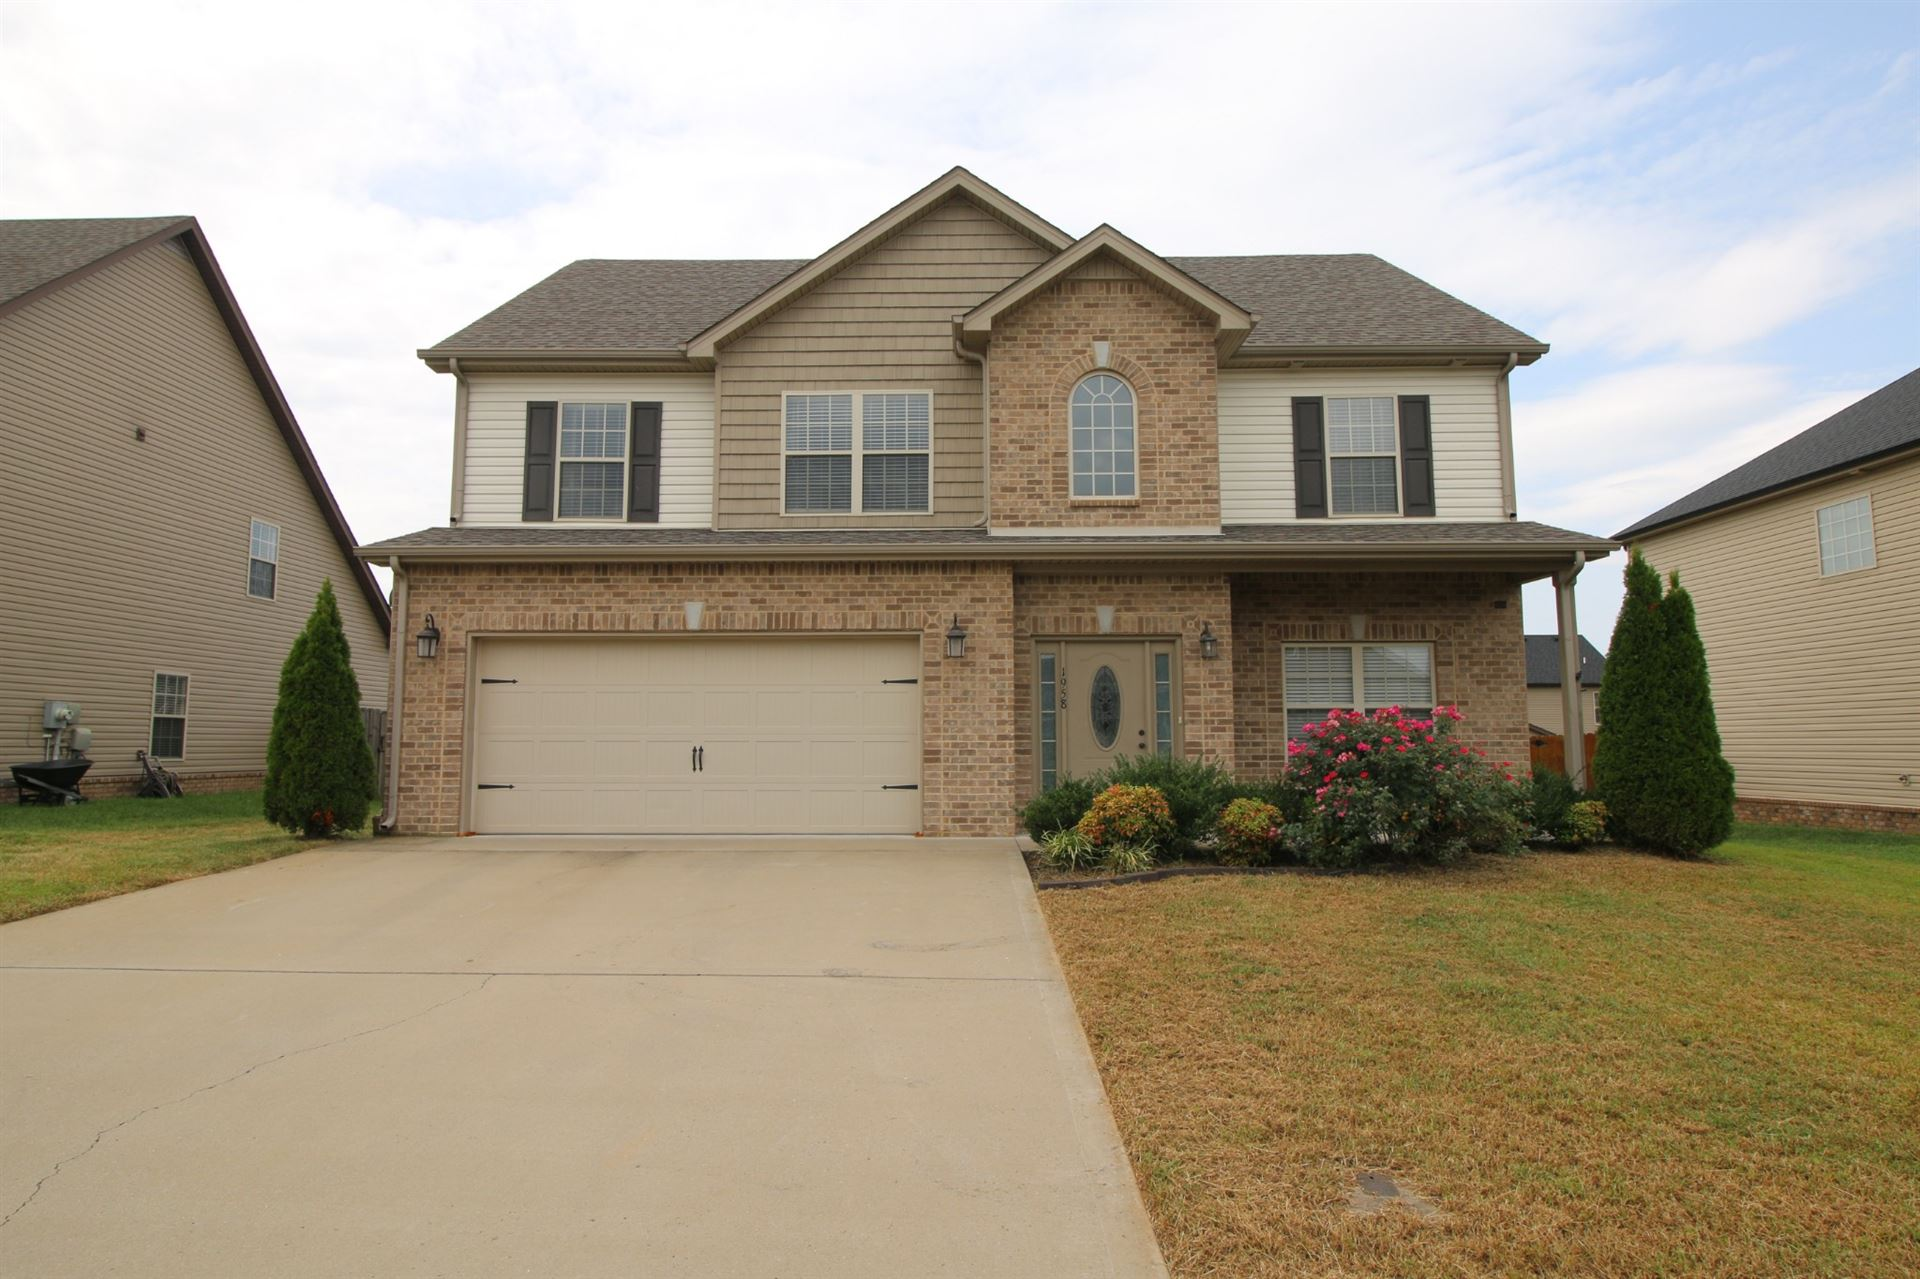 1958 Sunset Meadows Way, Clarksville, TN 37042 - MLS#: 2189557